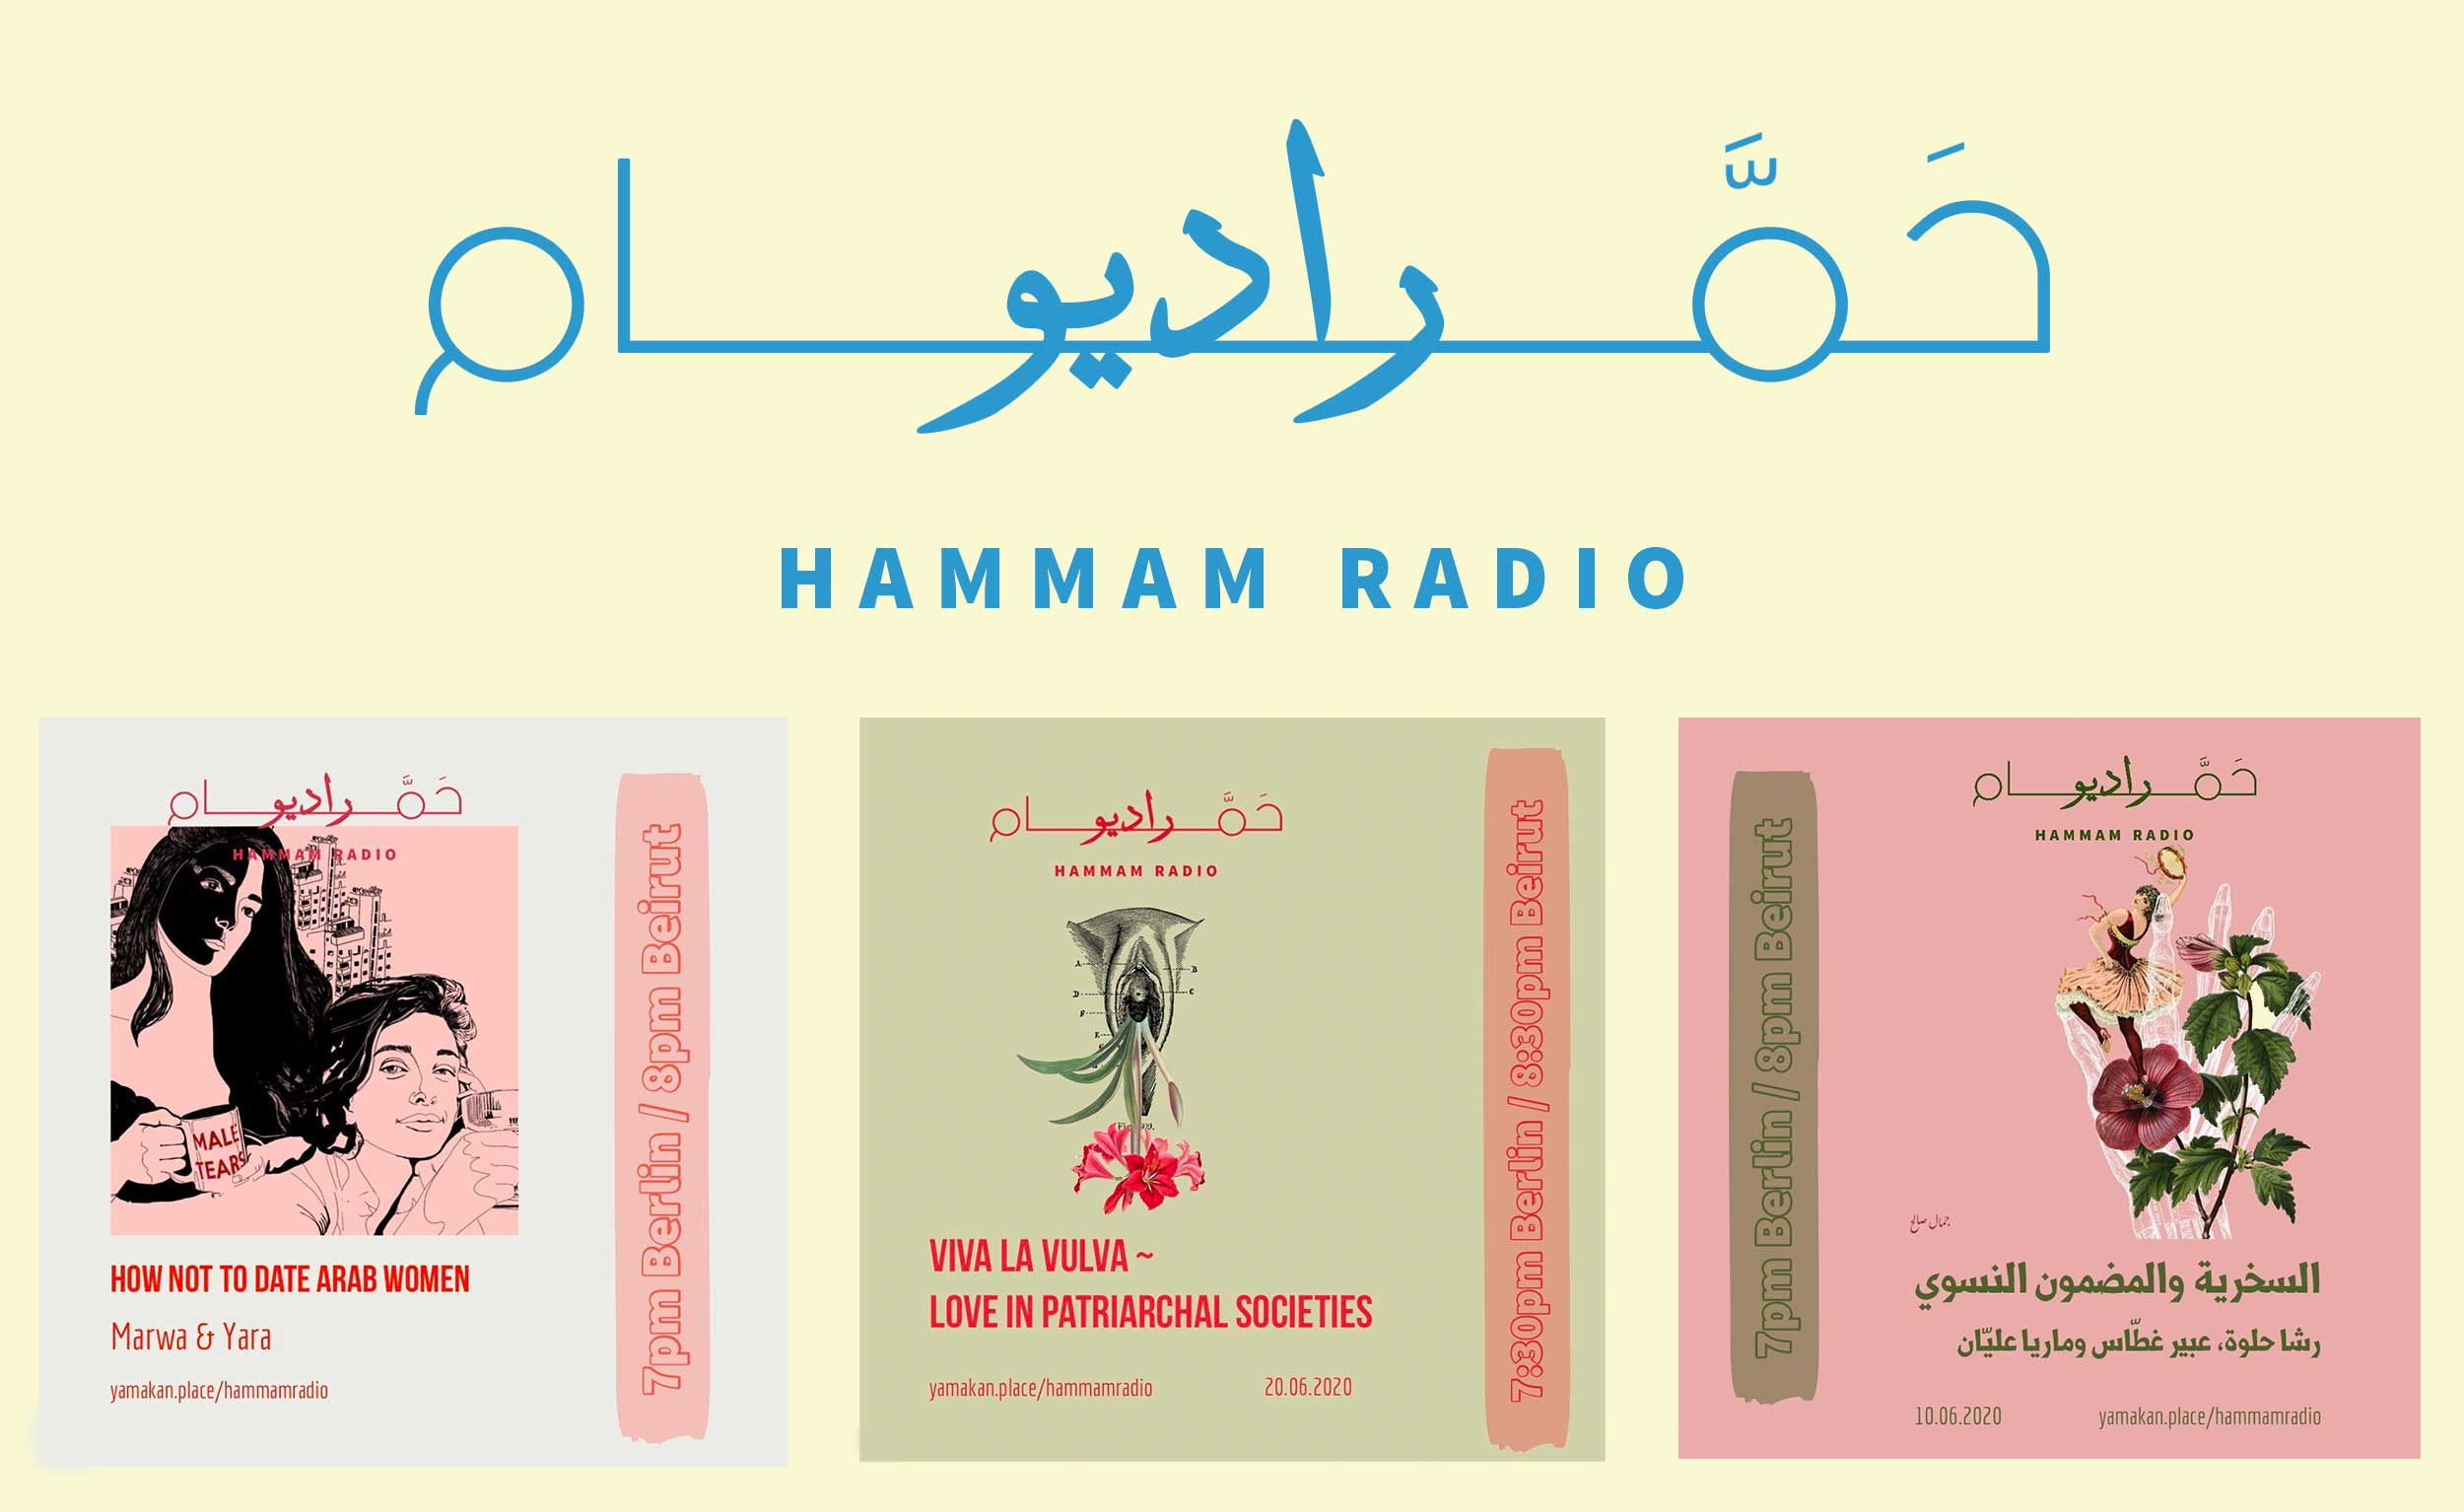 Images by HammamRadio